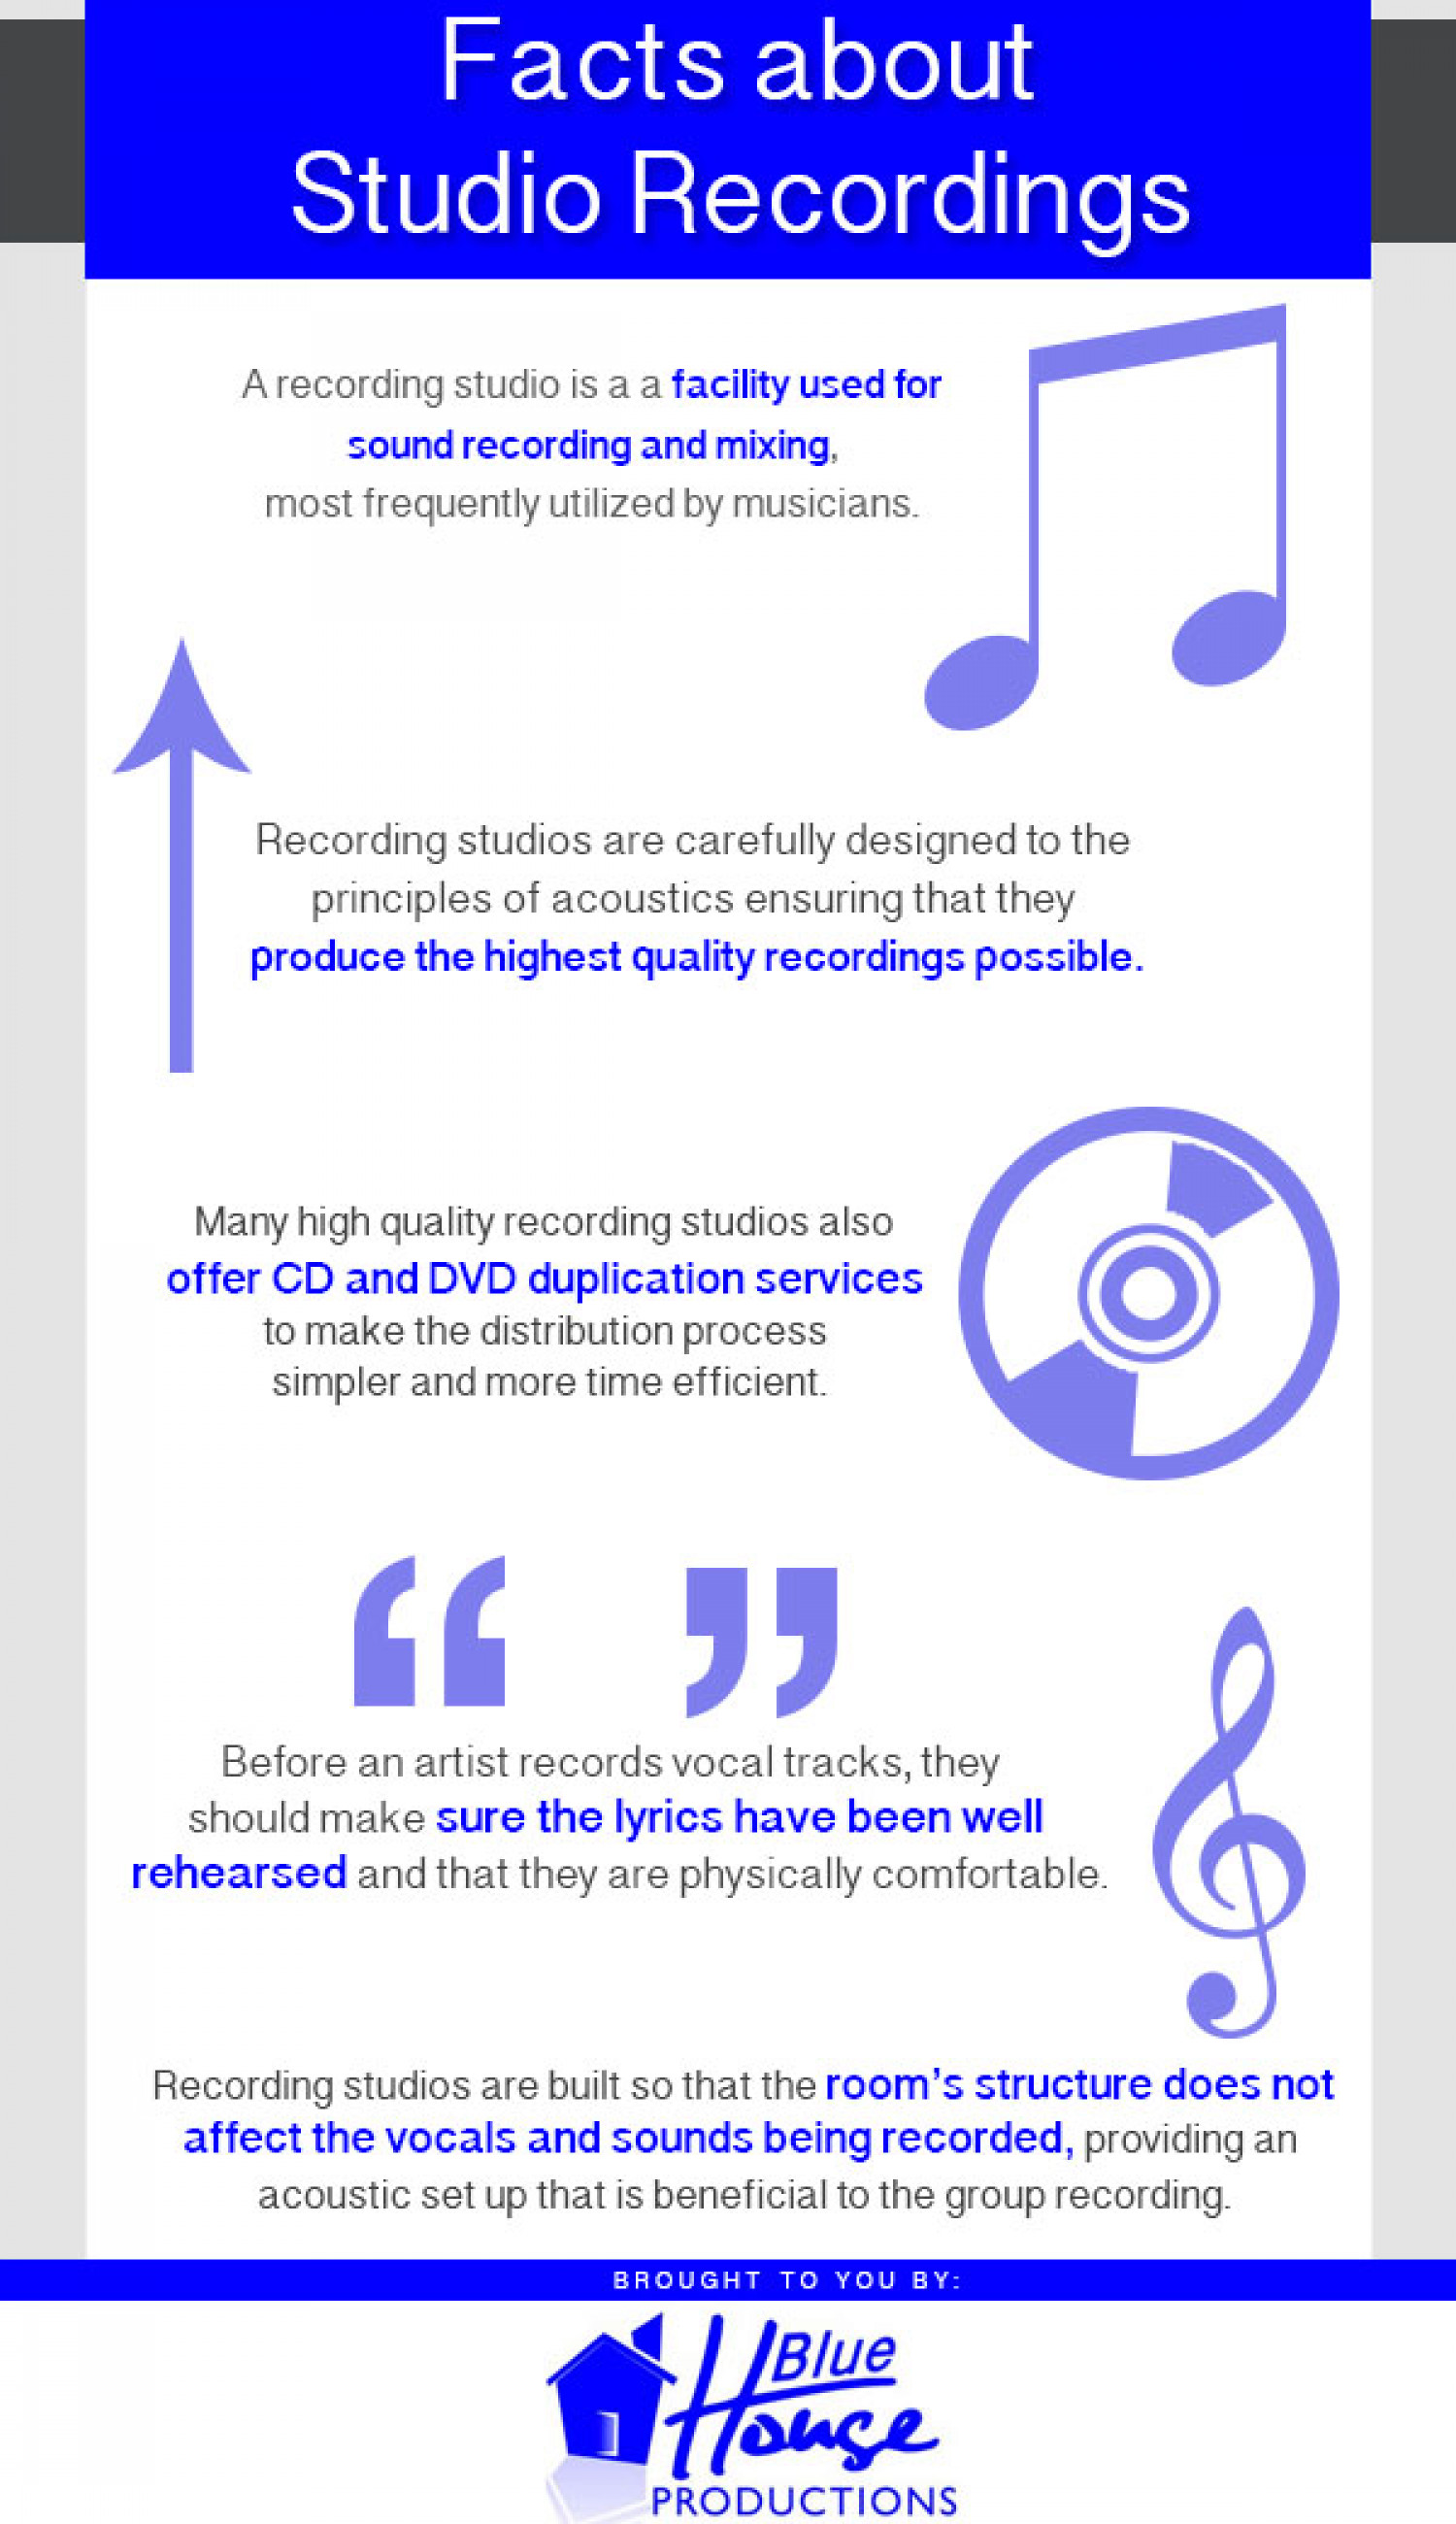 Facts about Studio Recordings Infographic